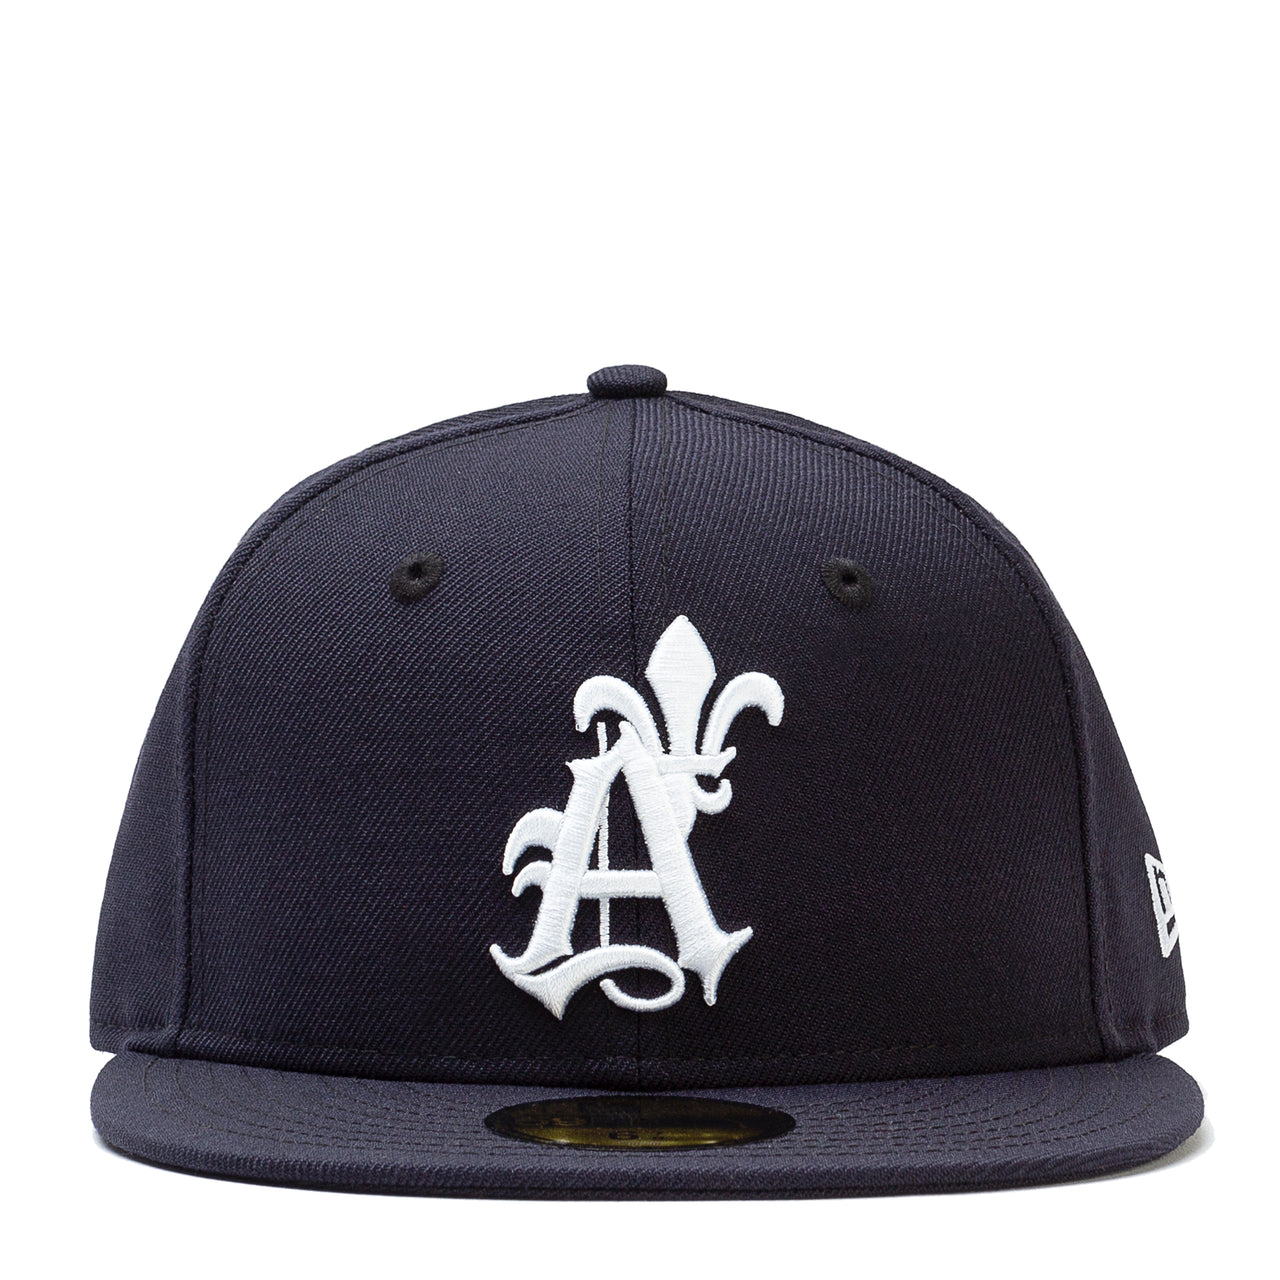 SEAL LOGO NEW ERA FITTED CAP SU20